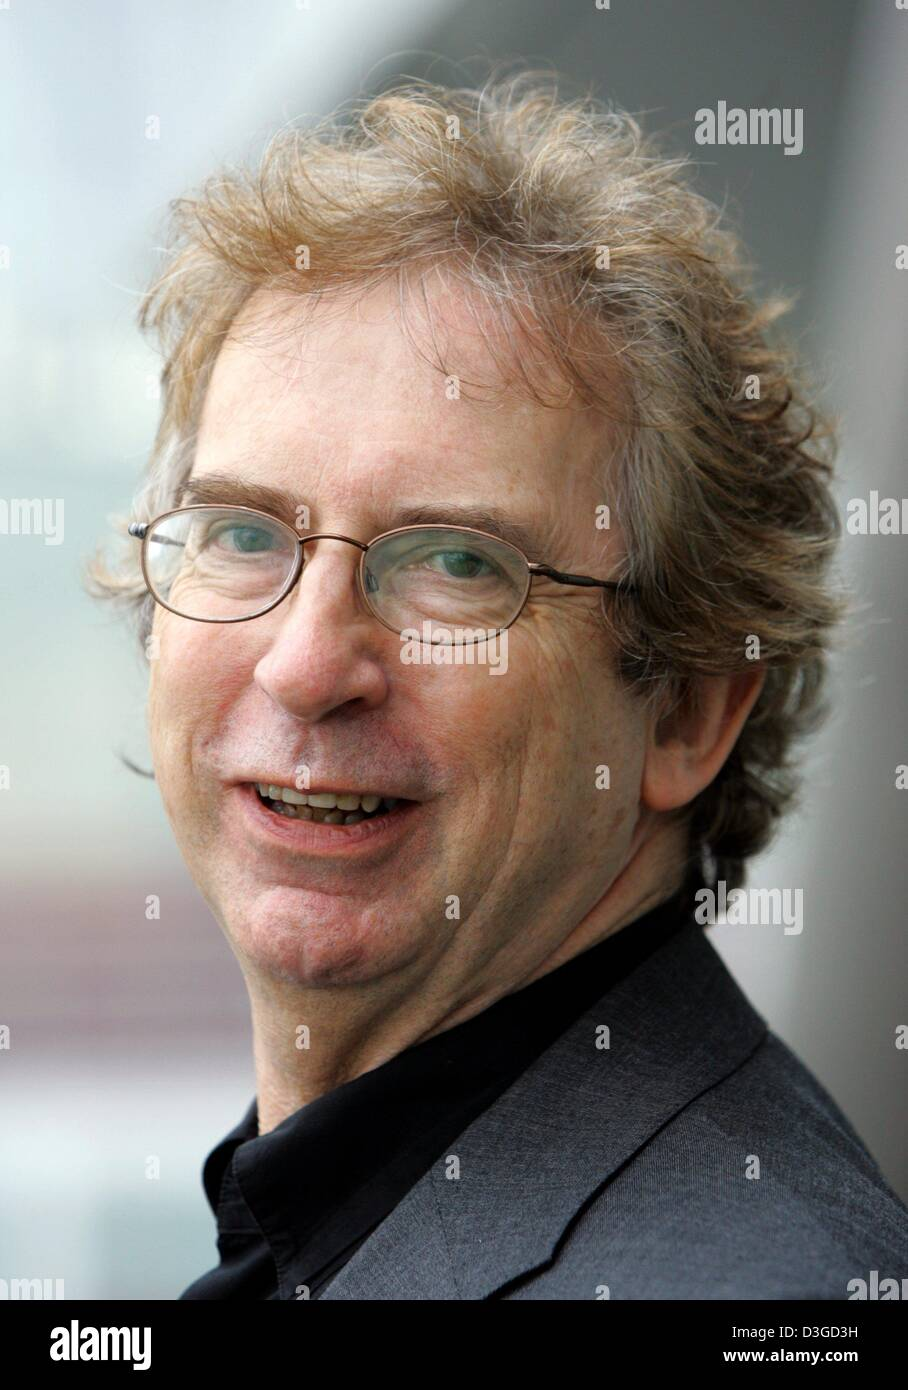 (dpa) - Australian author Peter Carey smiles during the Book Fair in Frankfurt, Germany, 6 October 2004. At the - Stock Image